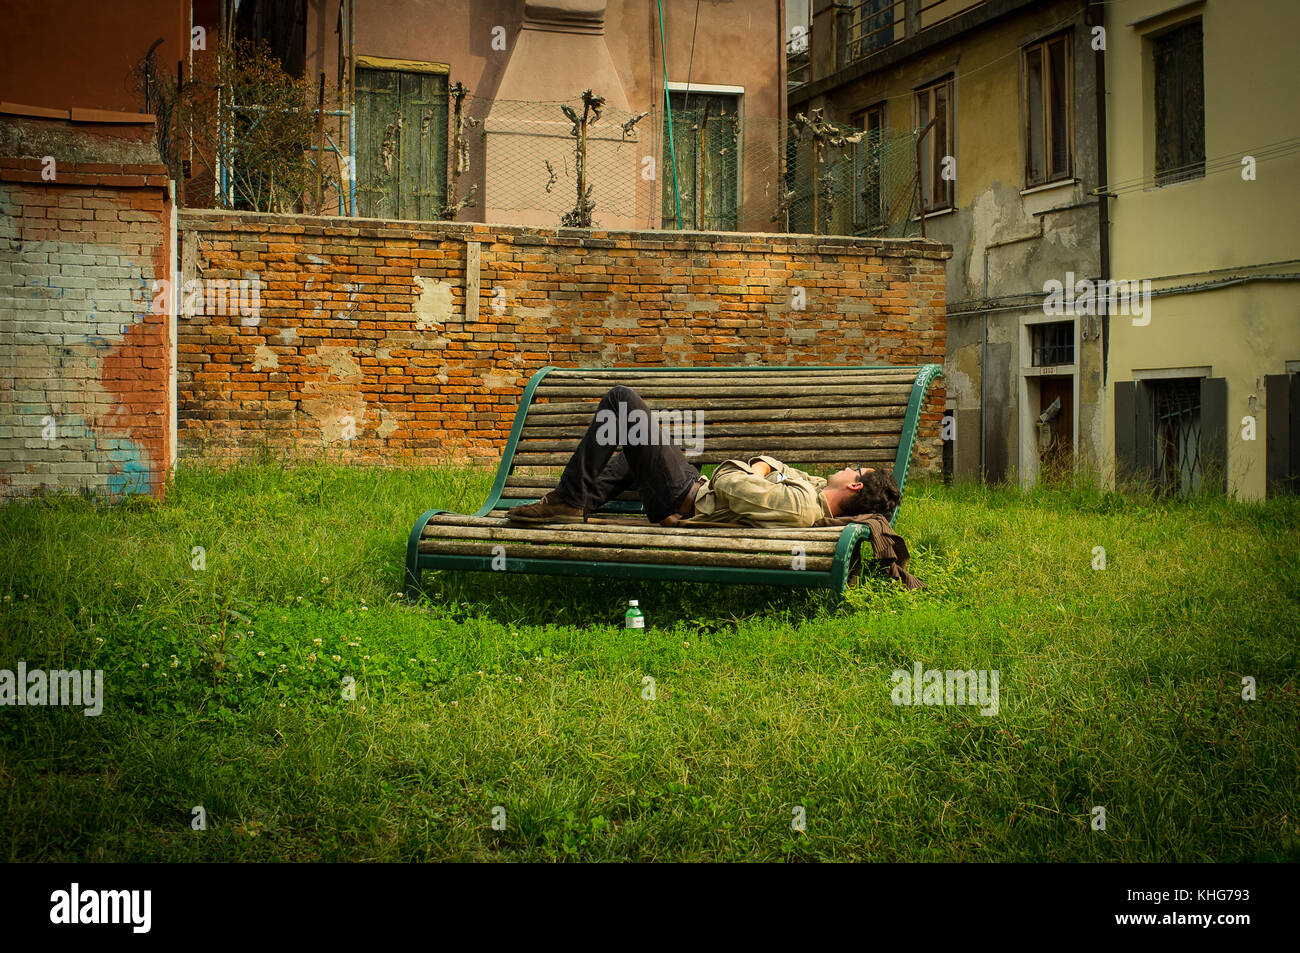 Sleeping on a bench in Venice, Have an afternoon snooz in the back streets of Venice, Green space with this city - Stock Image